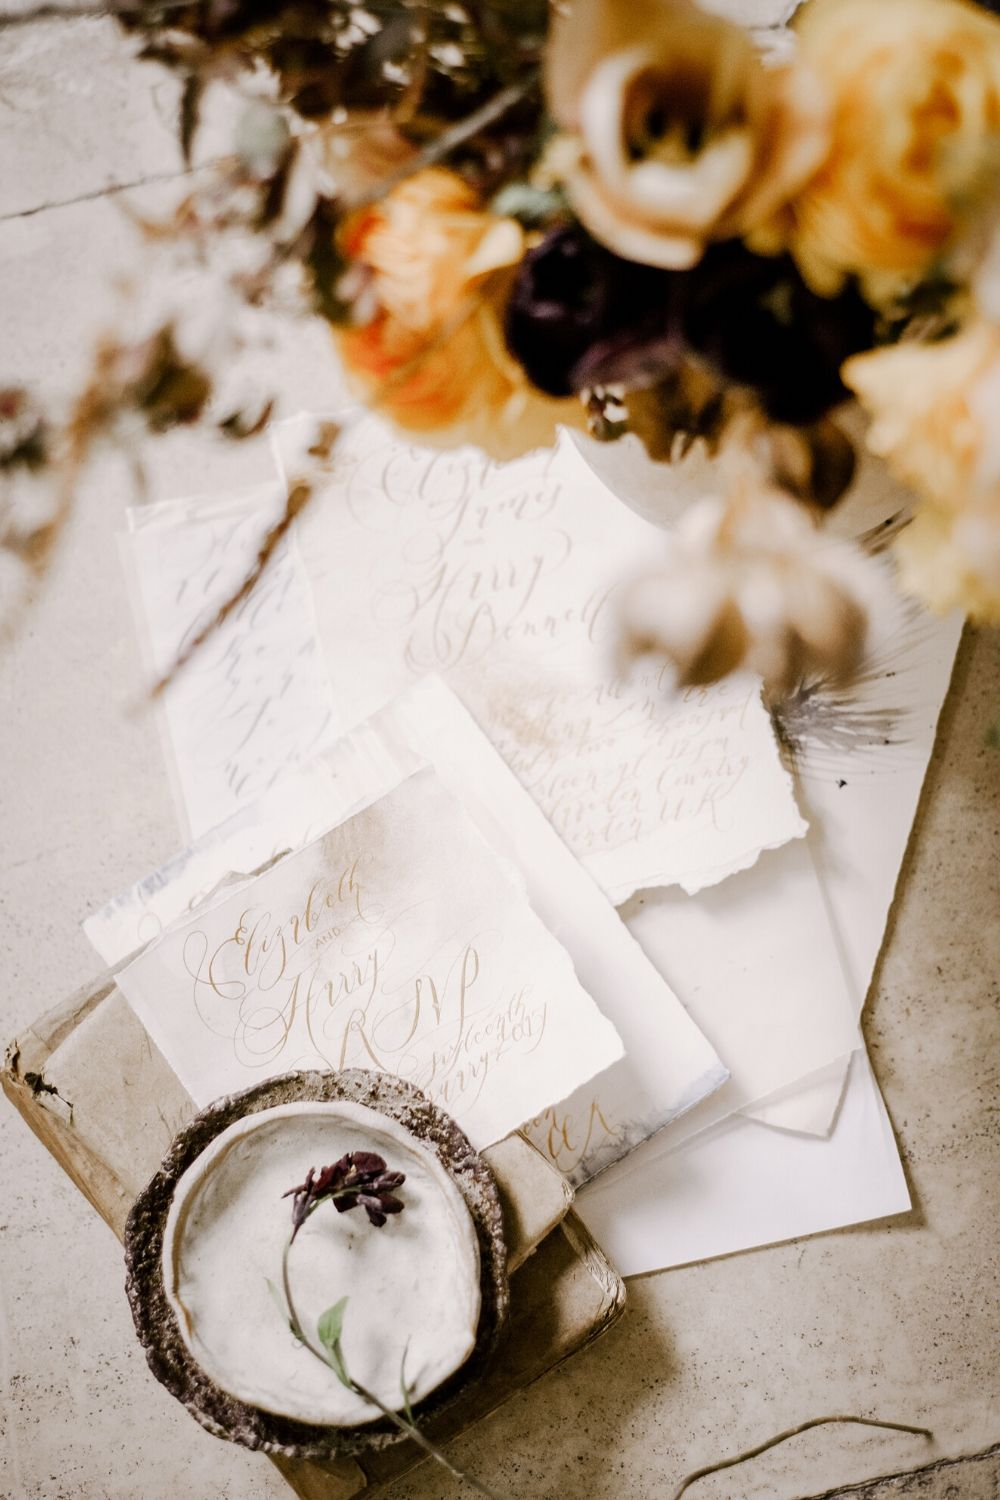 White fine art wedding stationery with gold watercolour and calligraphy